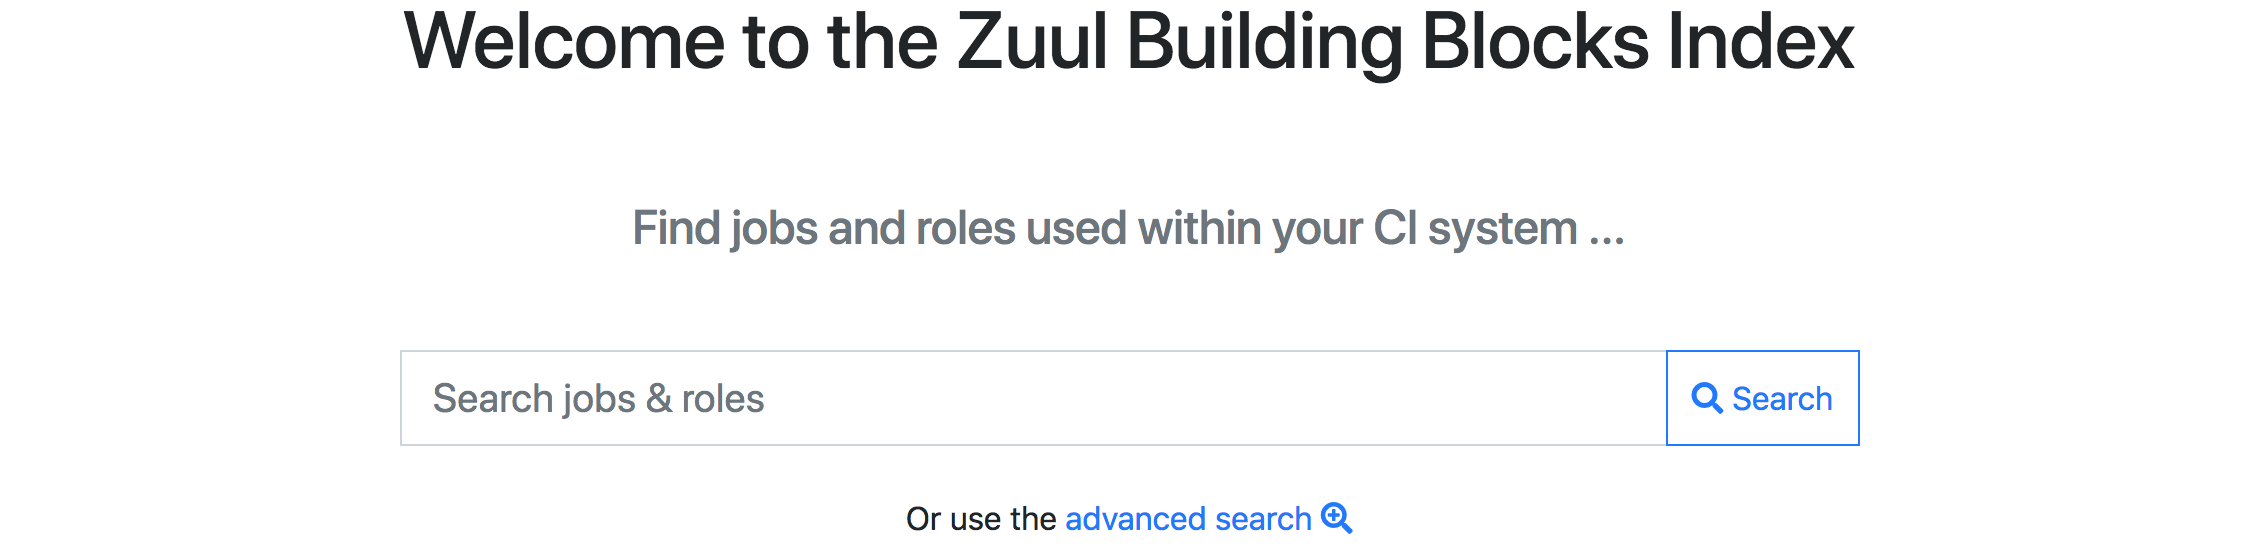 Welcome to the Zuul Building Blocks Index